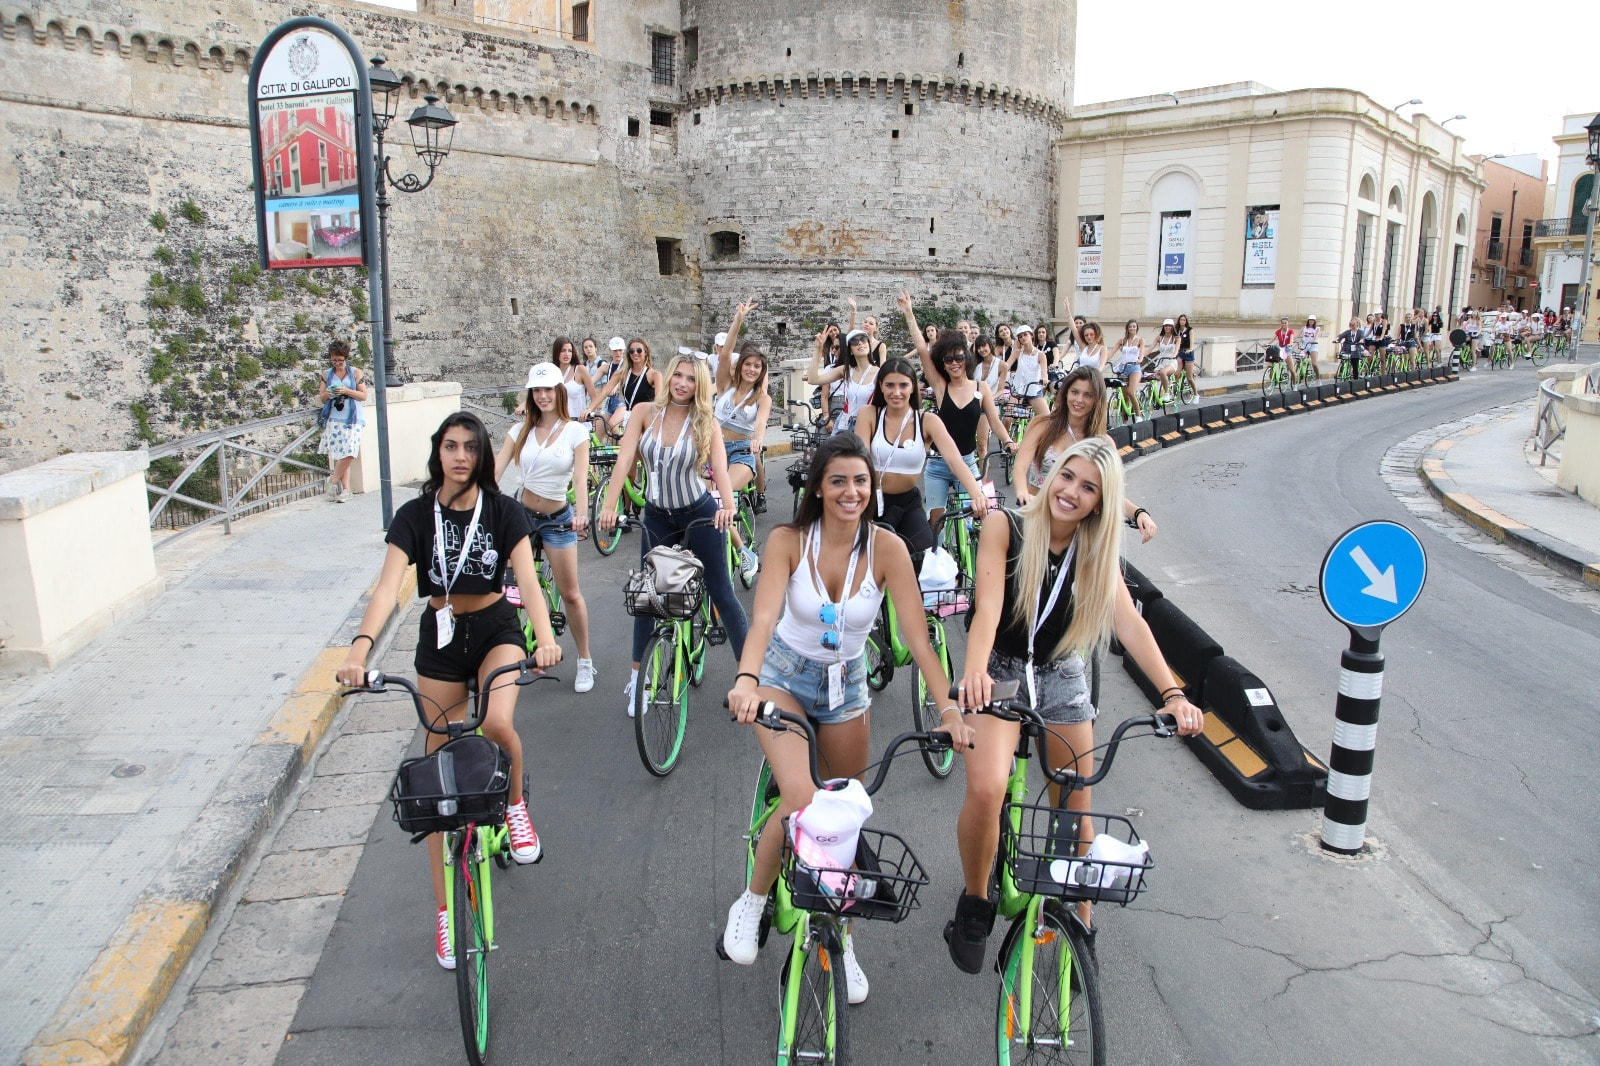 miss mondo giro in bici per gallipoli